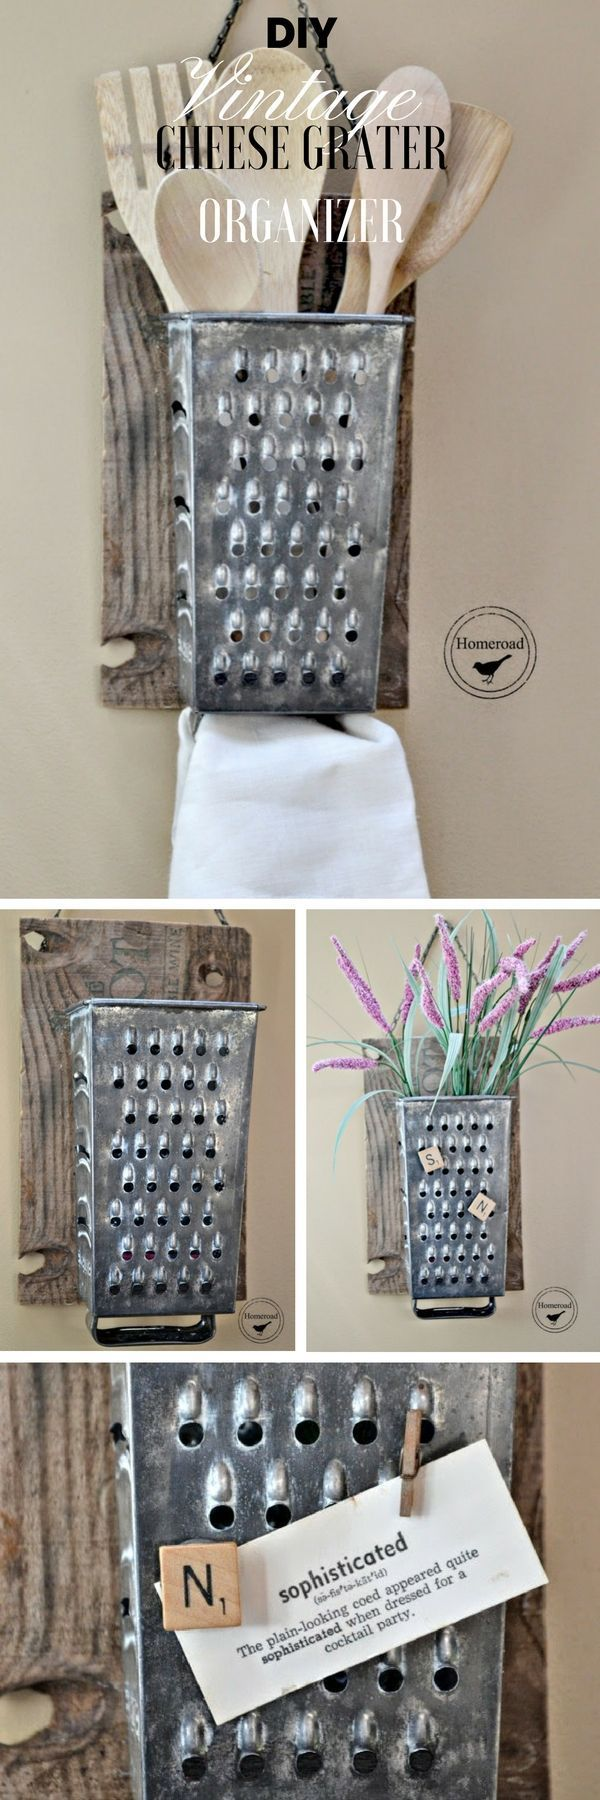 Here are 15 brilliant DIY kitchen organization ideas that will help you organize your kitchen and make it look pretty at the same time.